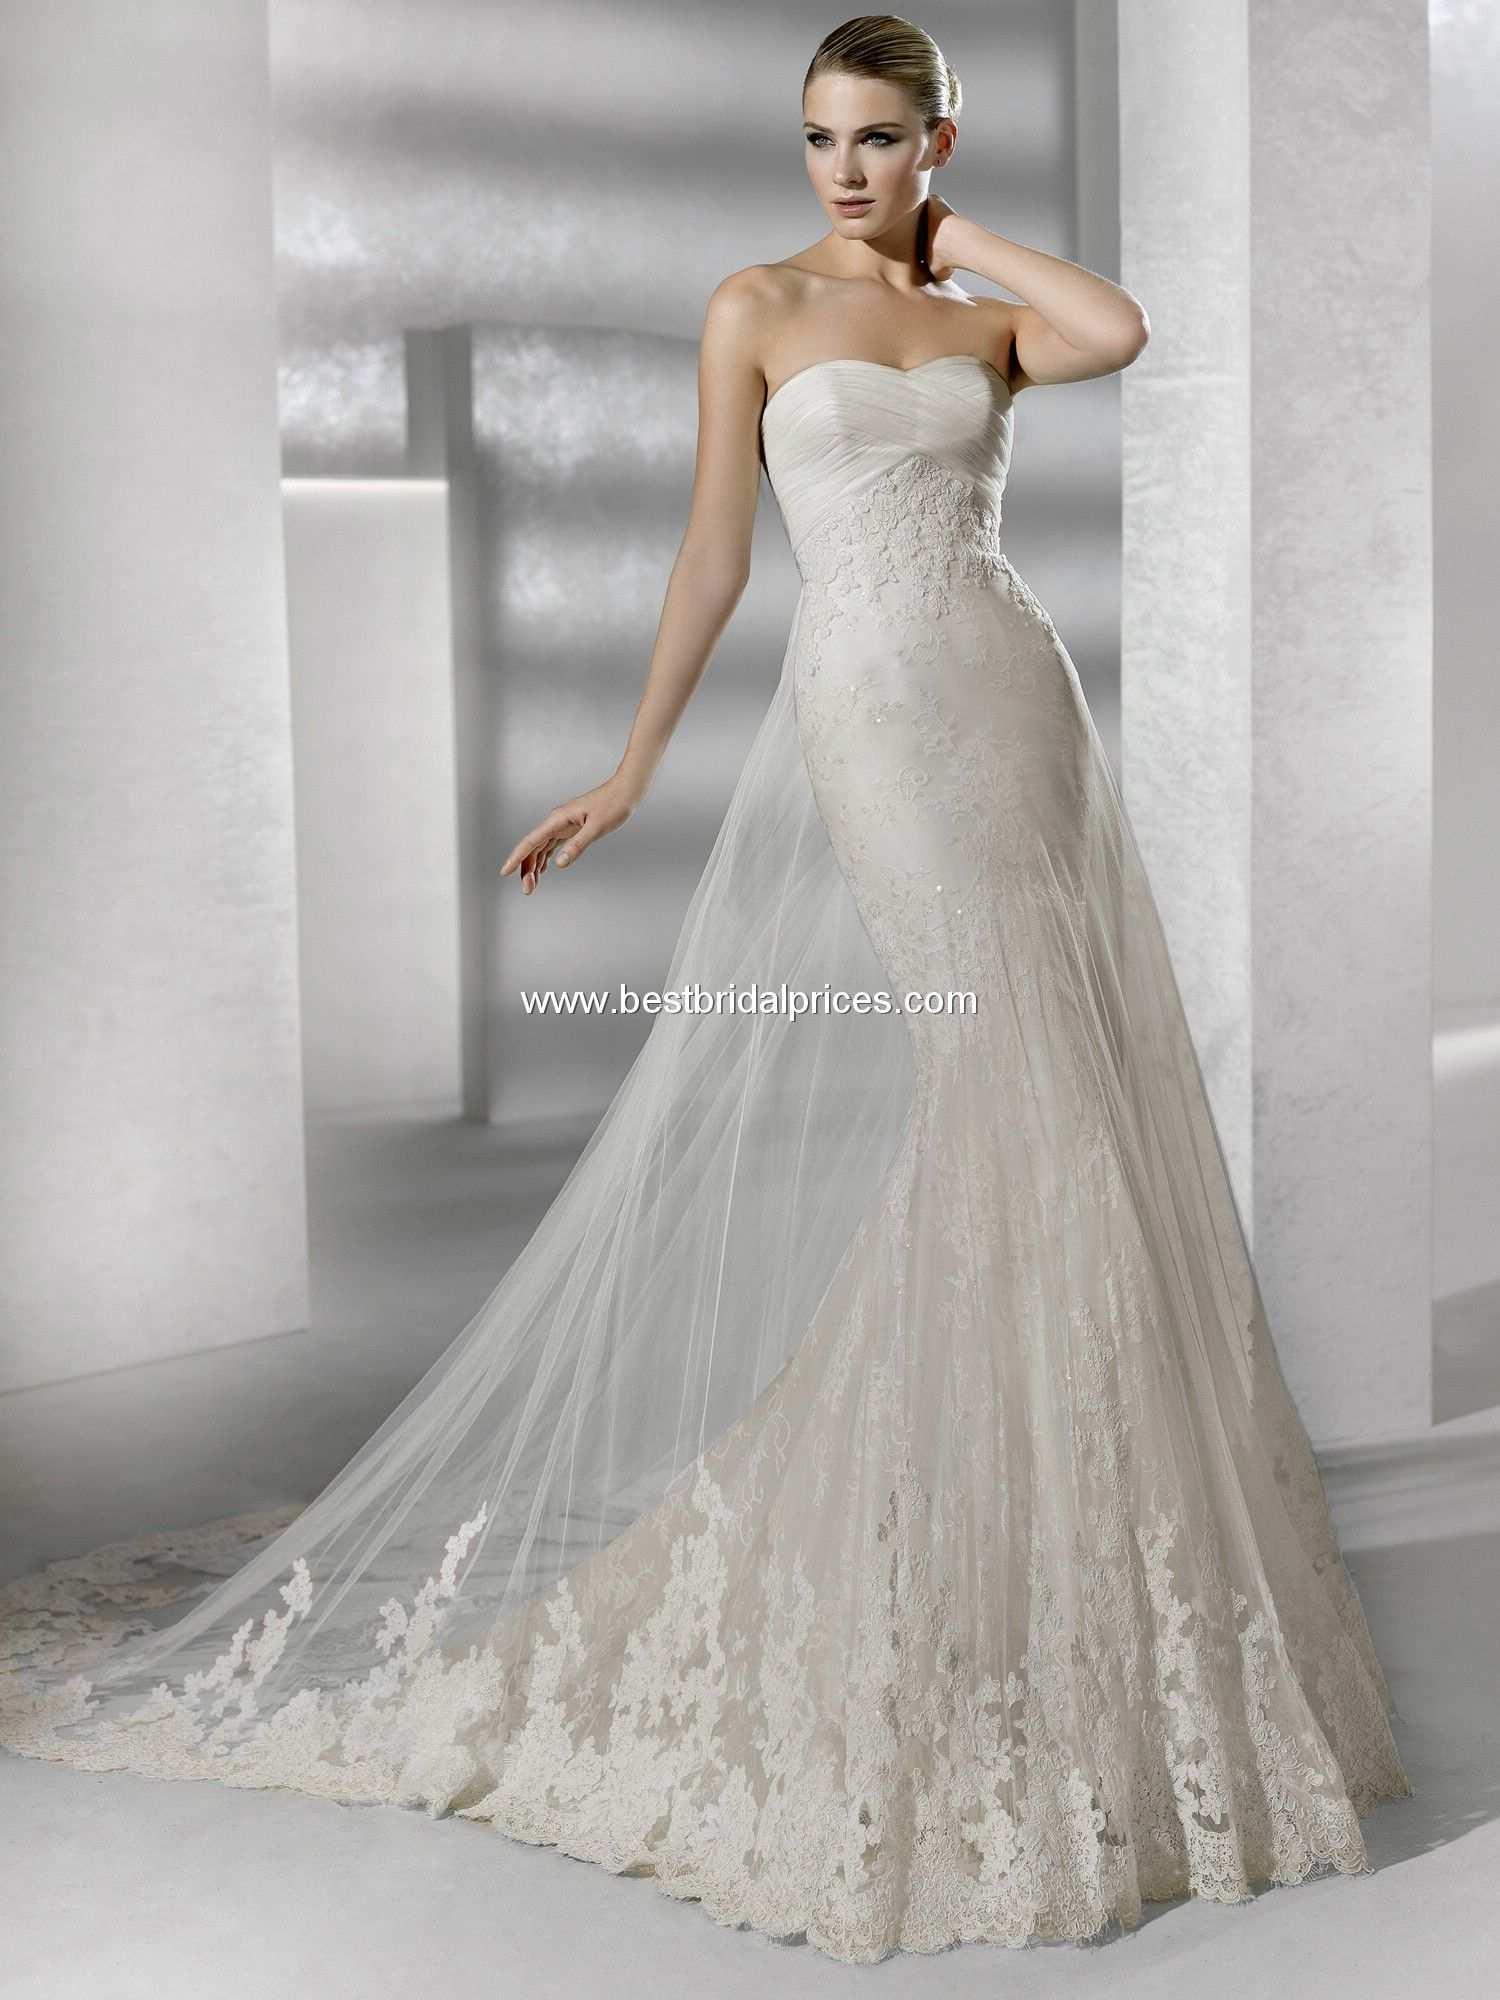 Nice La Sposa Denia I work at bridal salon and we carry this dress It